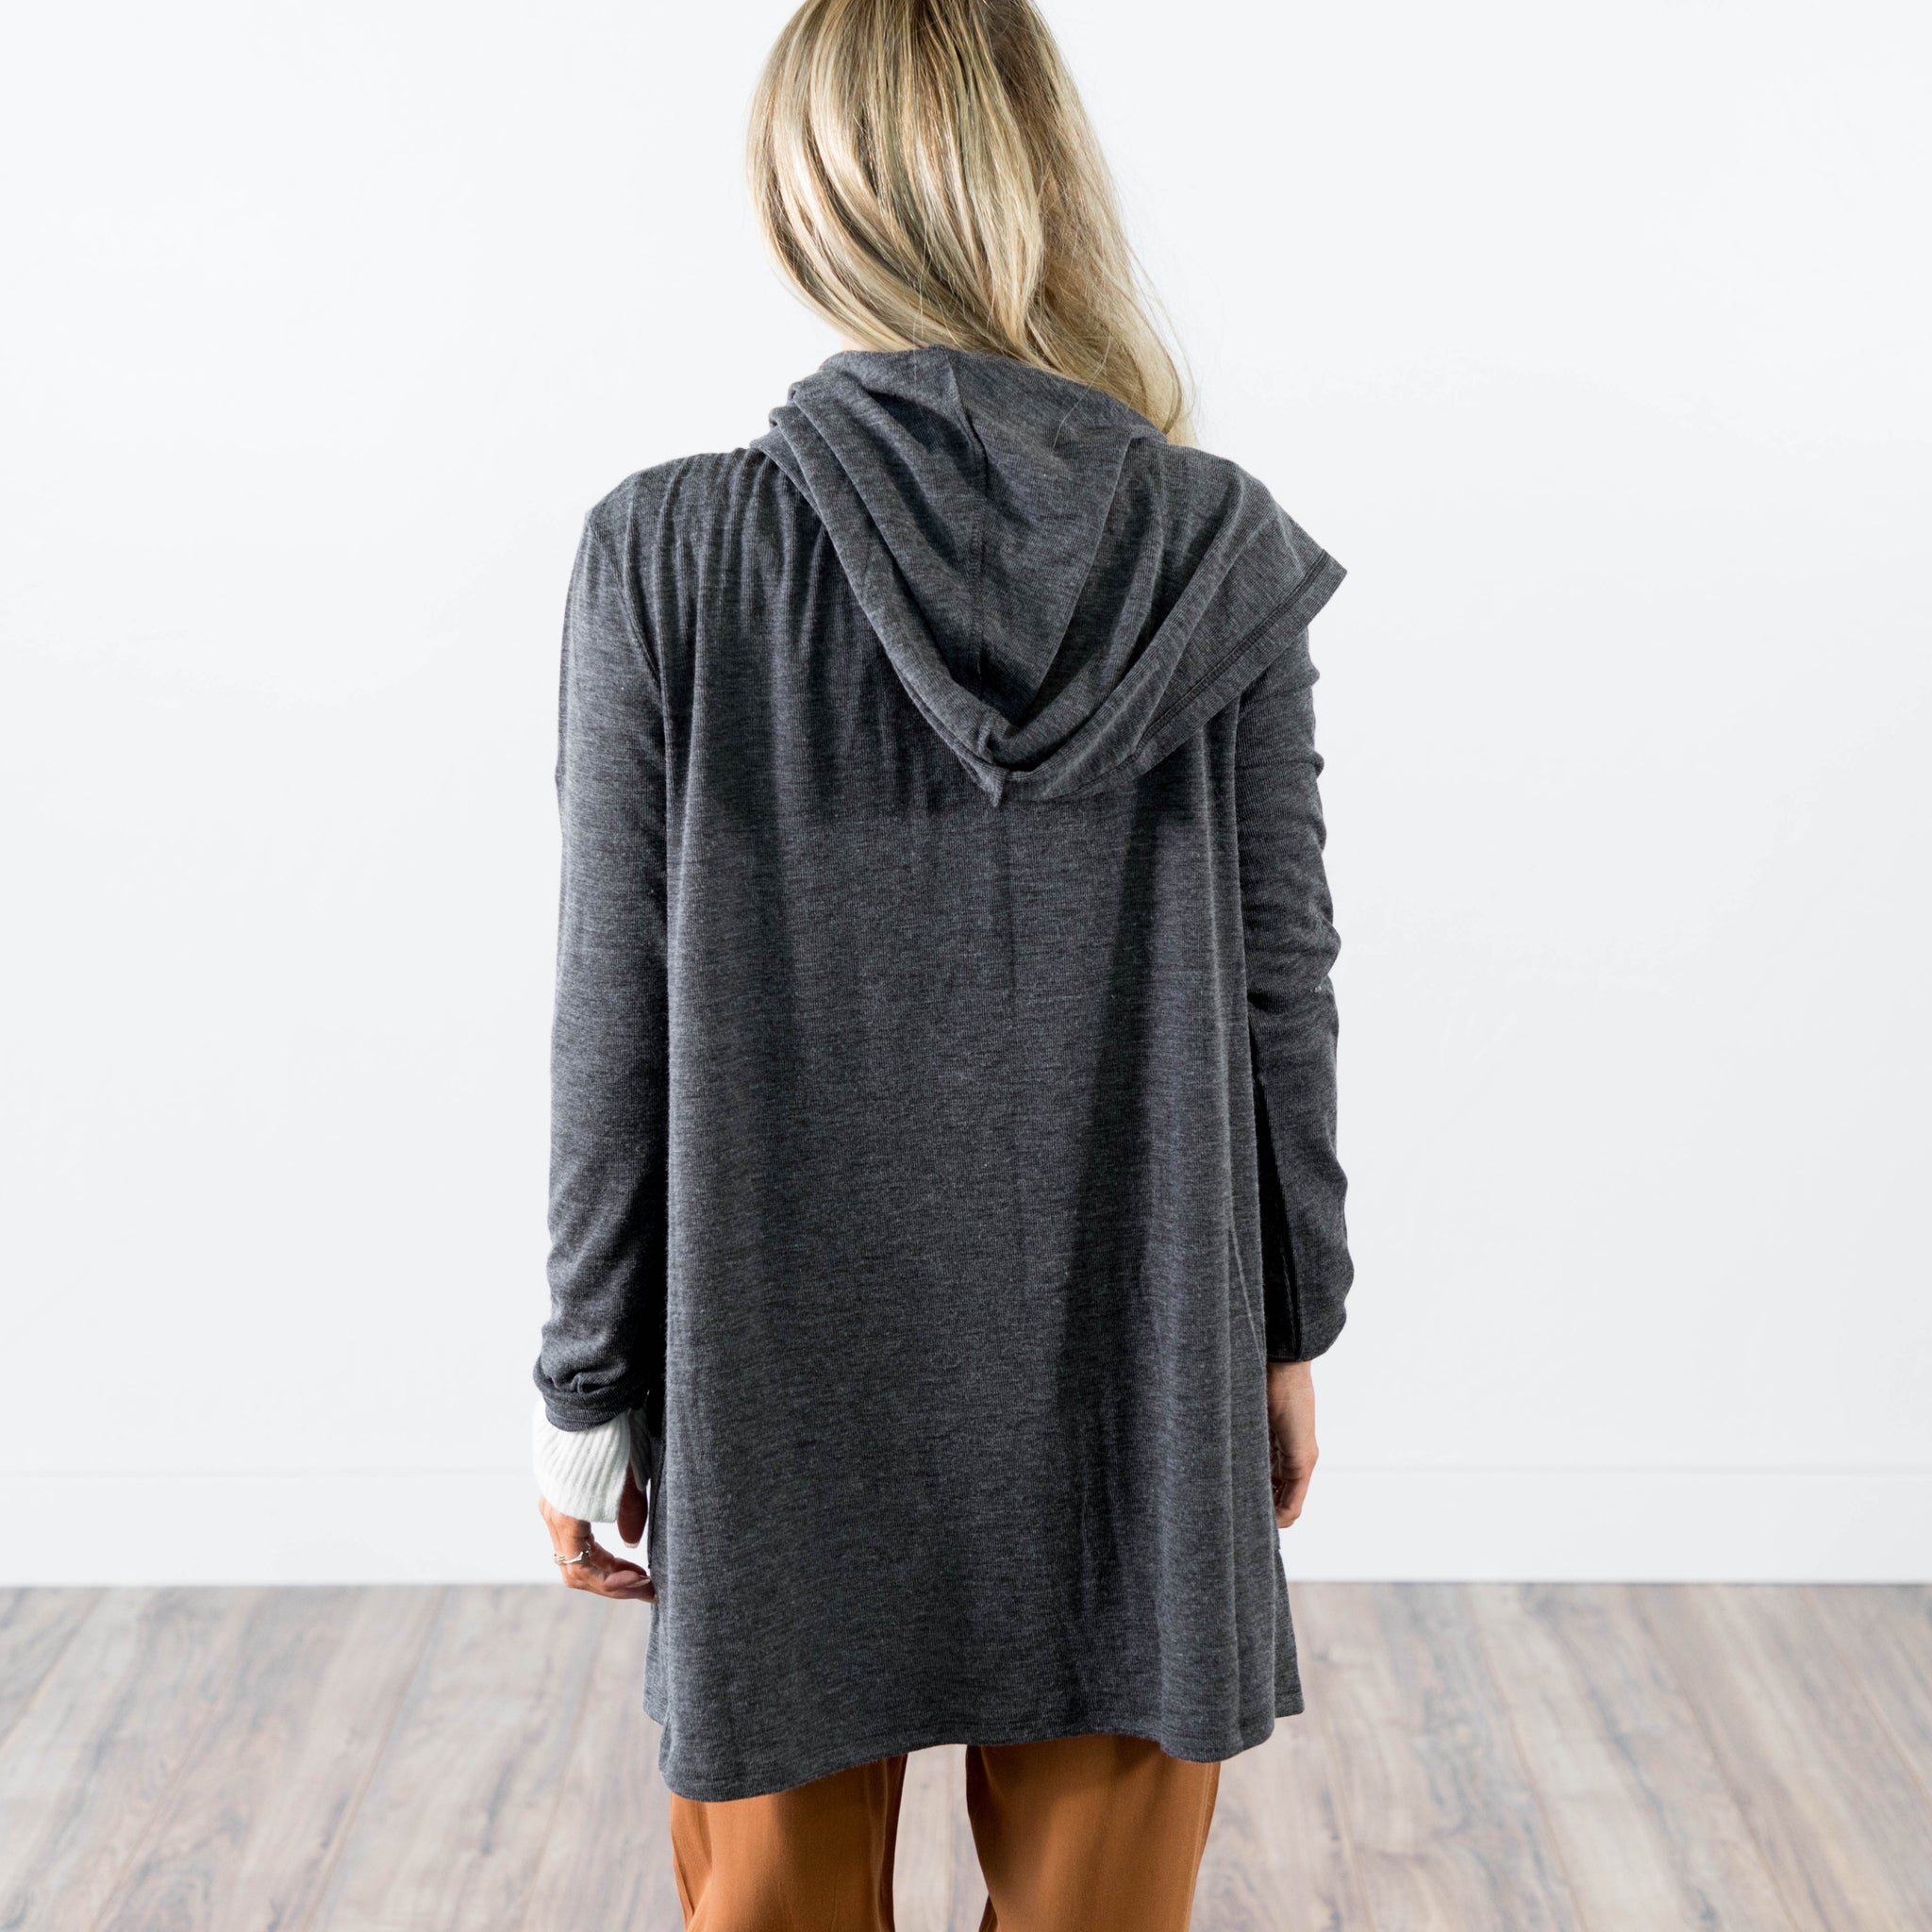 Mia Cardigan in Black